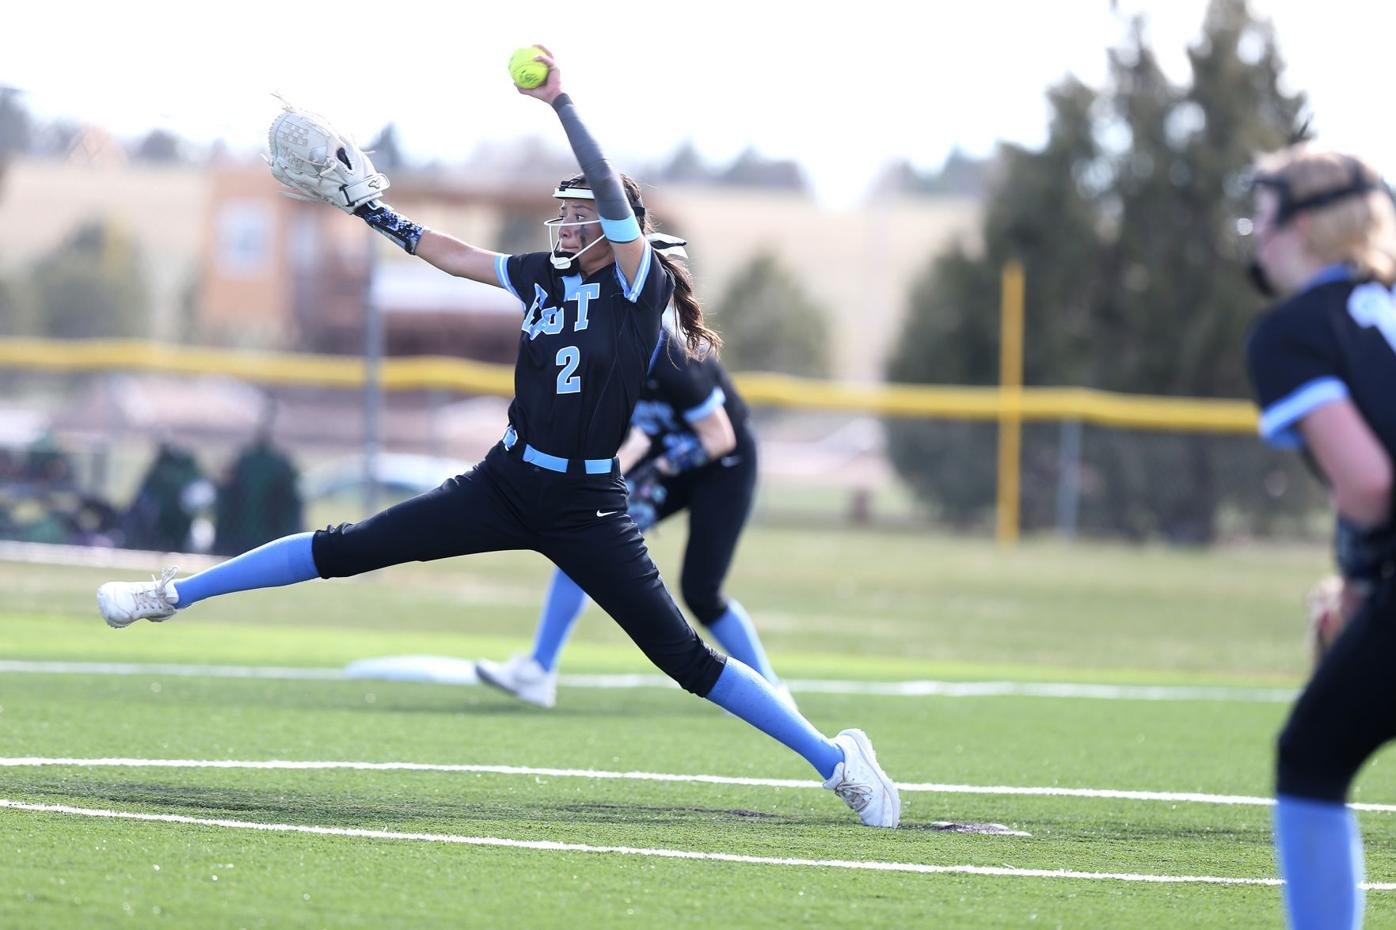 20210430-spts-eastsoftball-mc-1.JPG